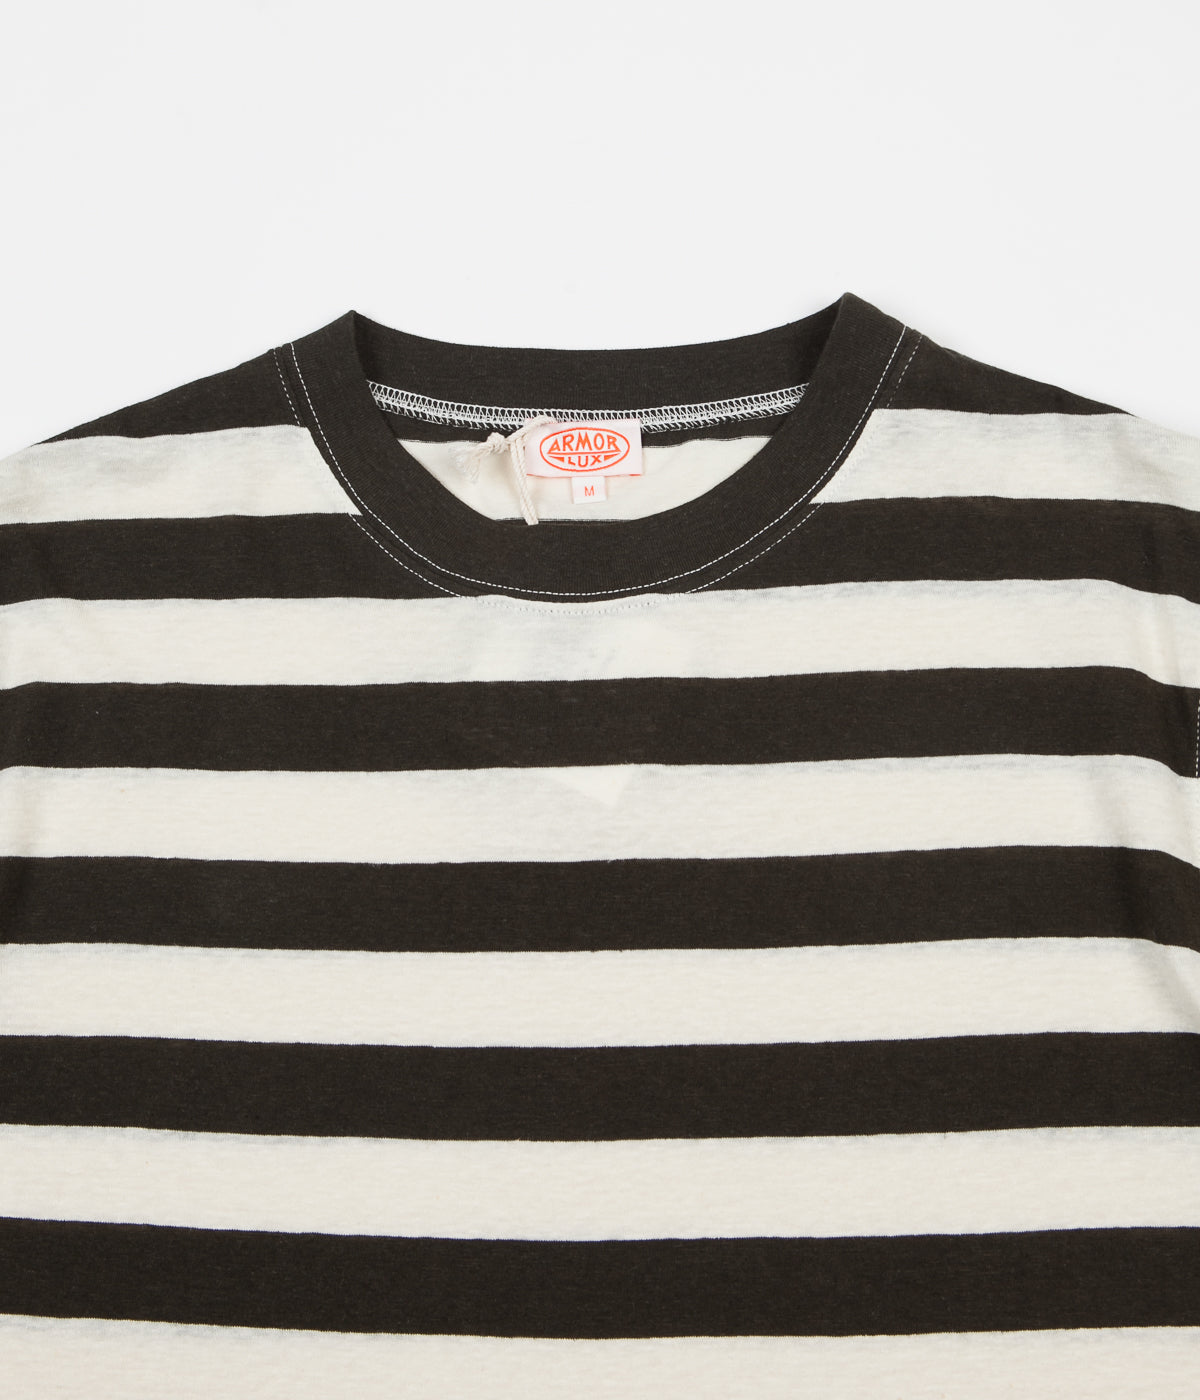 Armor Lux Heritage Striped Round Collar T-Shirt - Aquilla / Nature